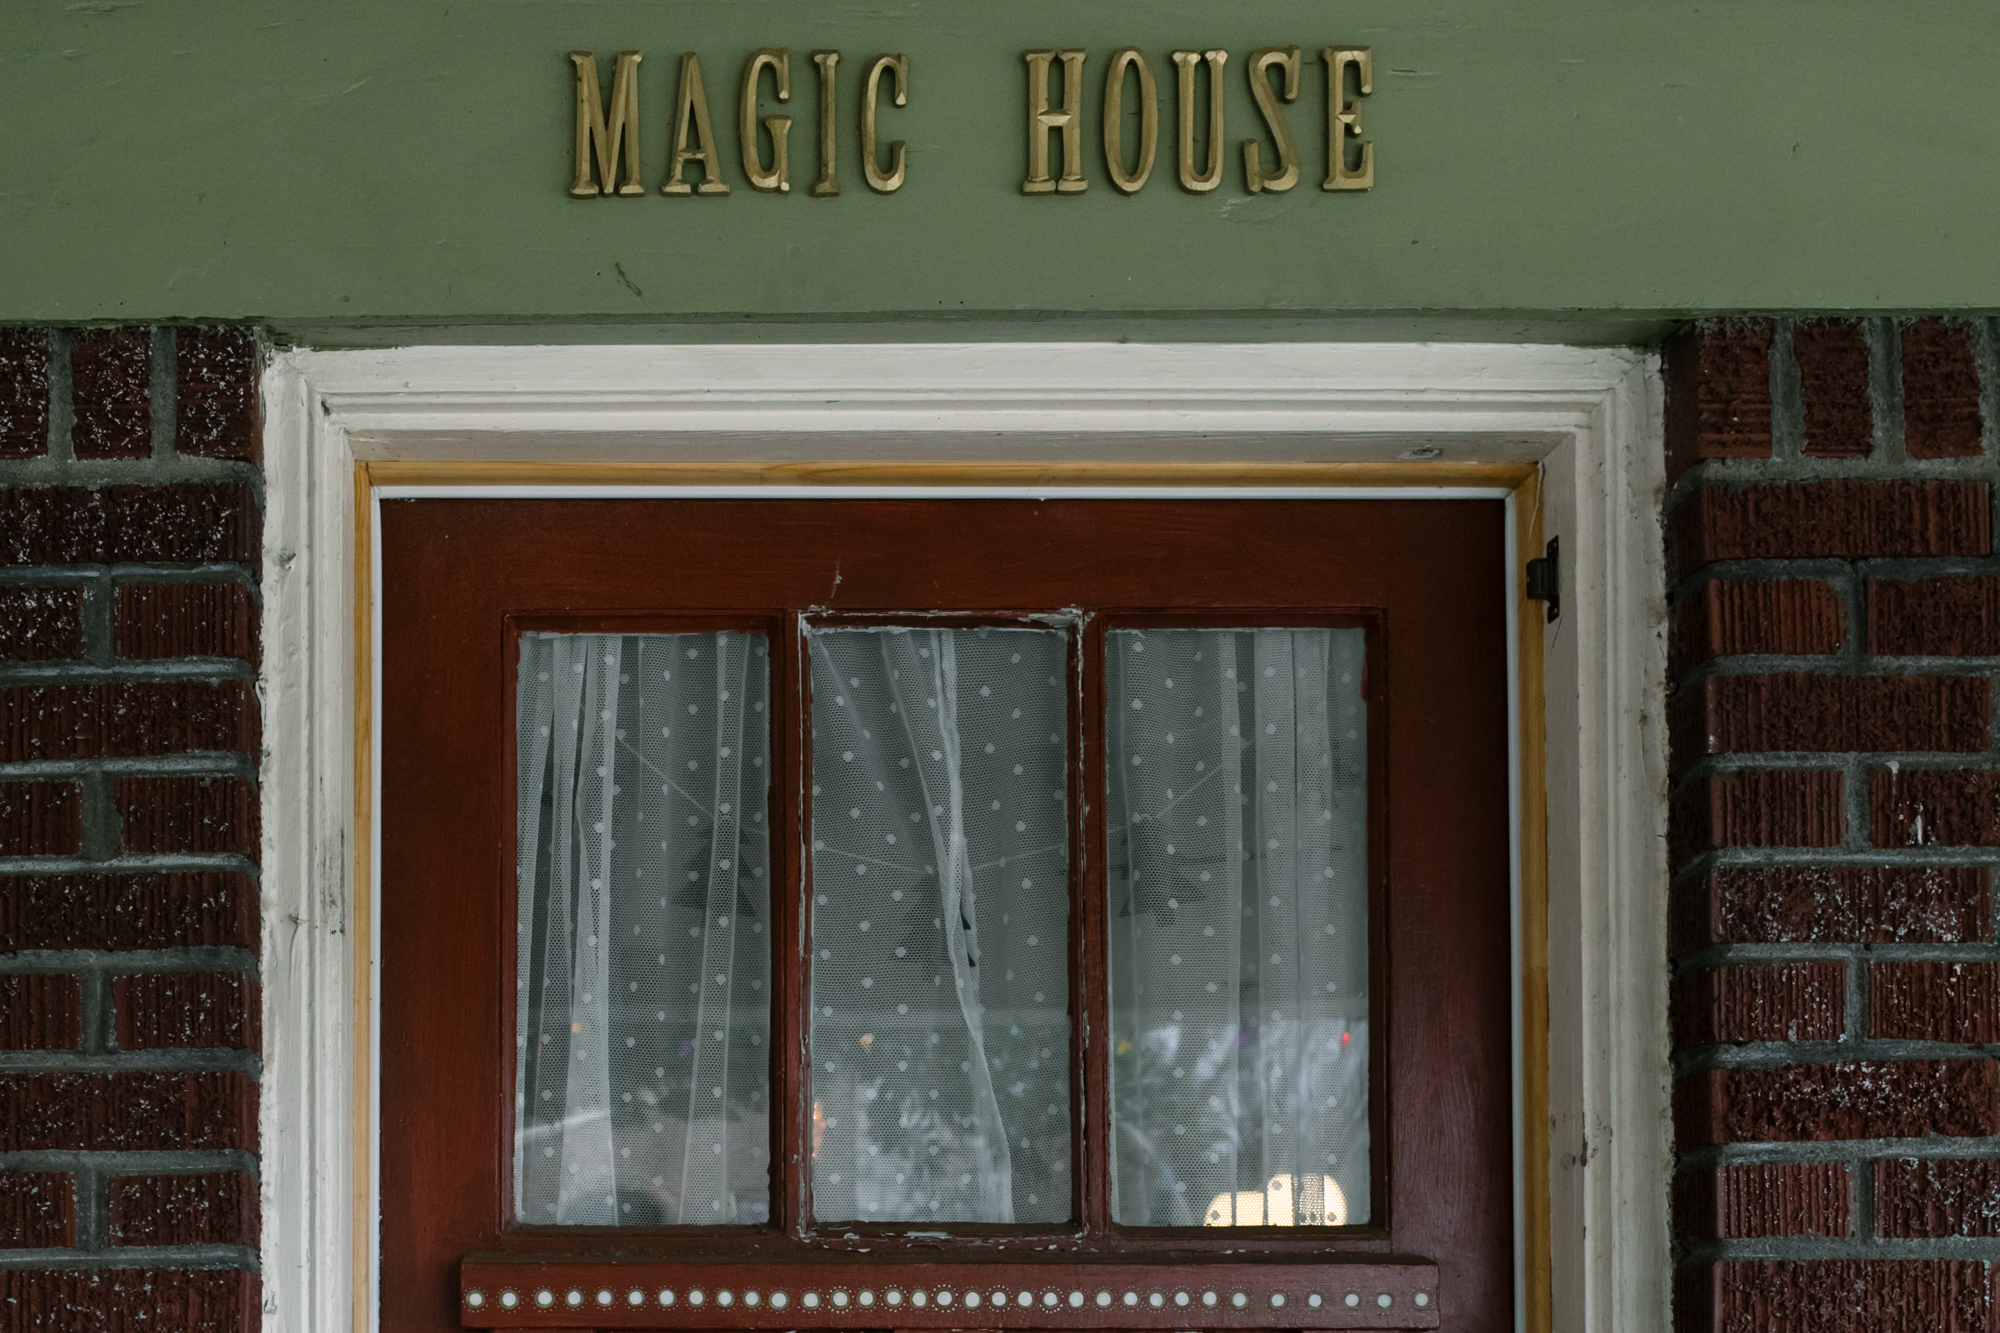 the top of a door with the words Magic House written above the door frame